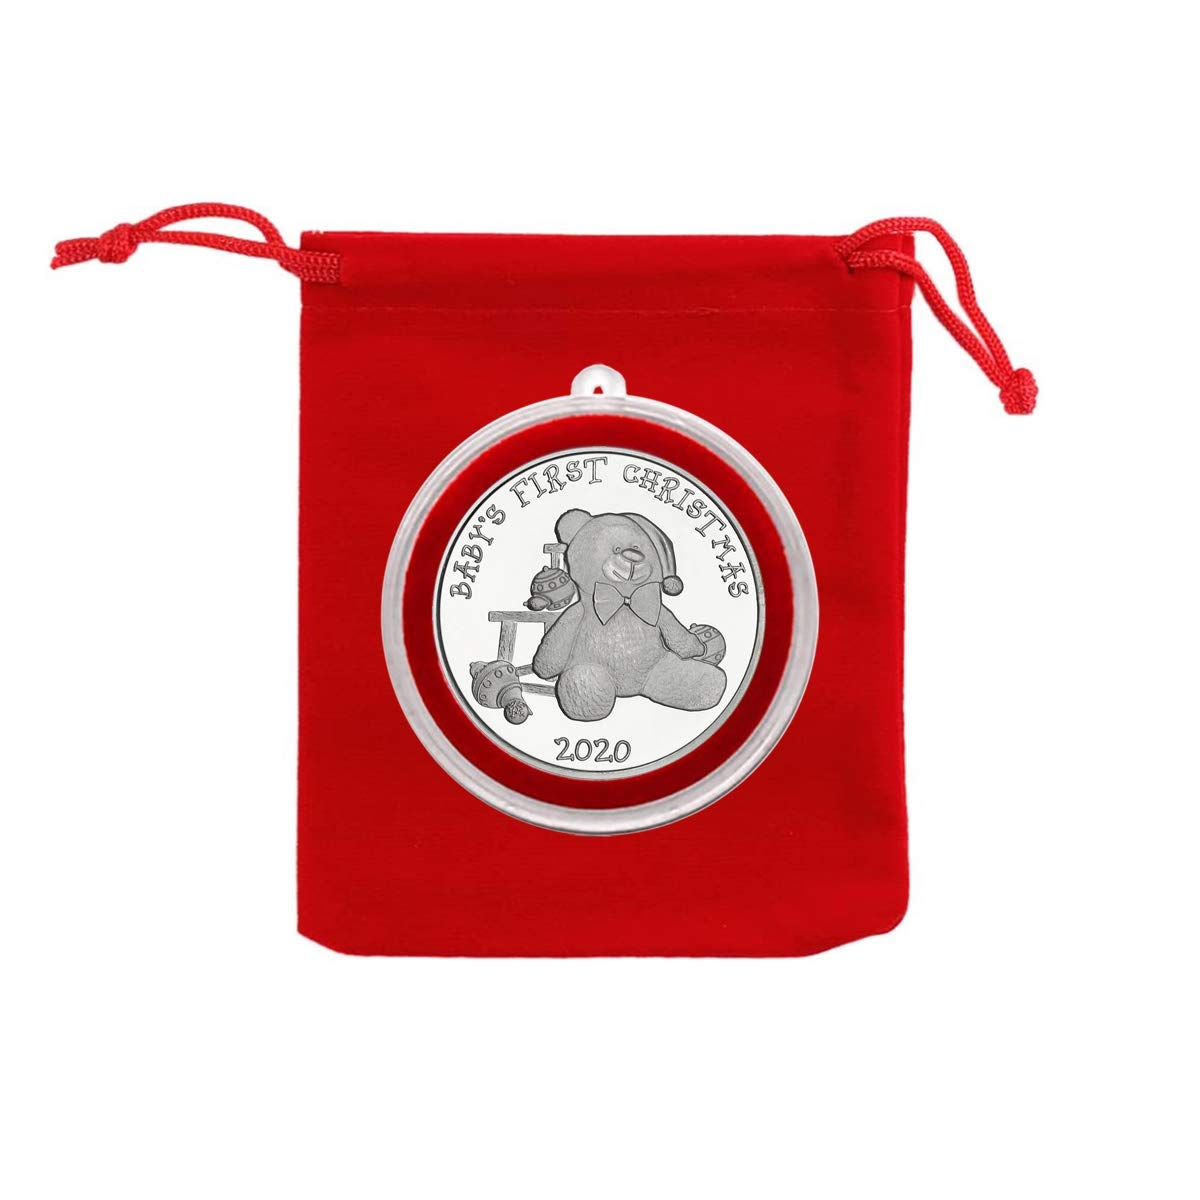 Uncirculated 2020 Babys 1st Christmas Teddy Bear Santa Hat Silver Coin in Ornament Holder and Red Velvet Gift Bag